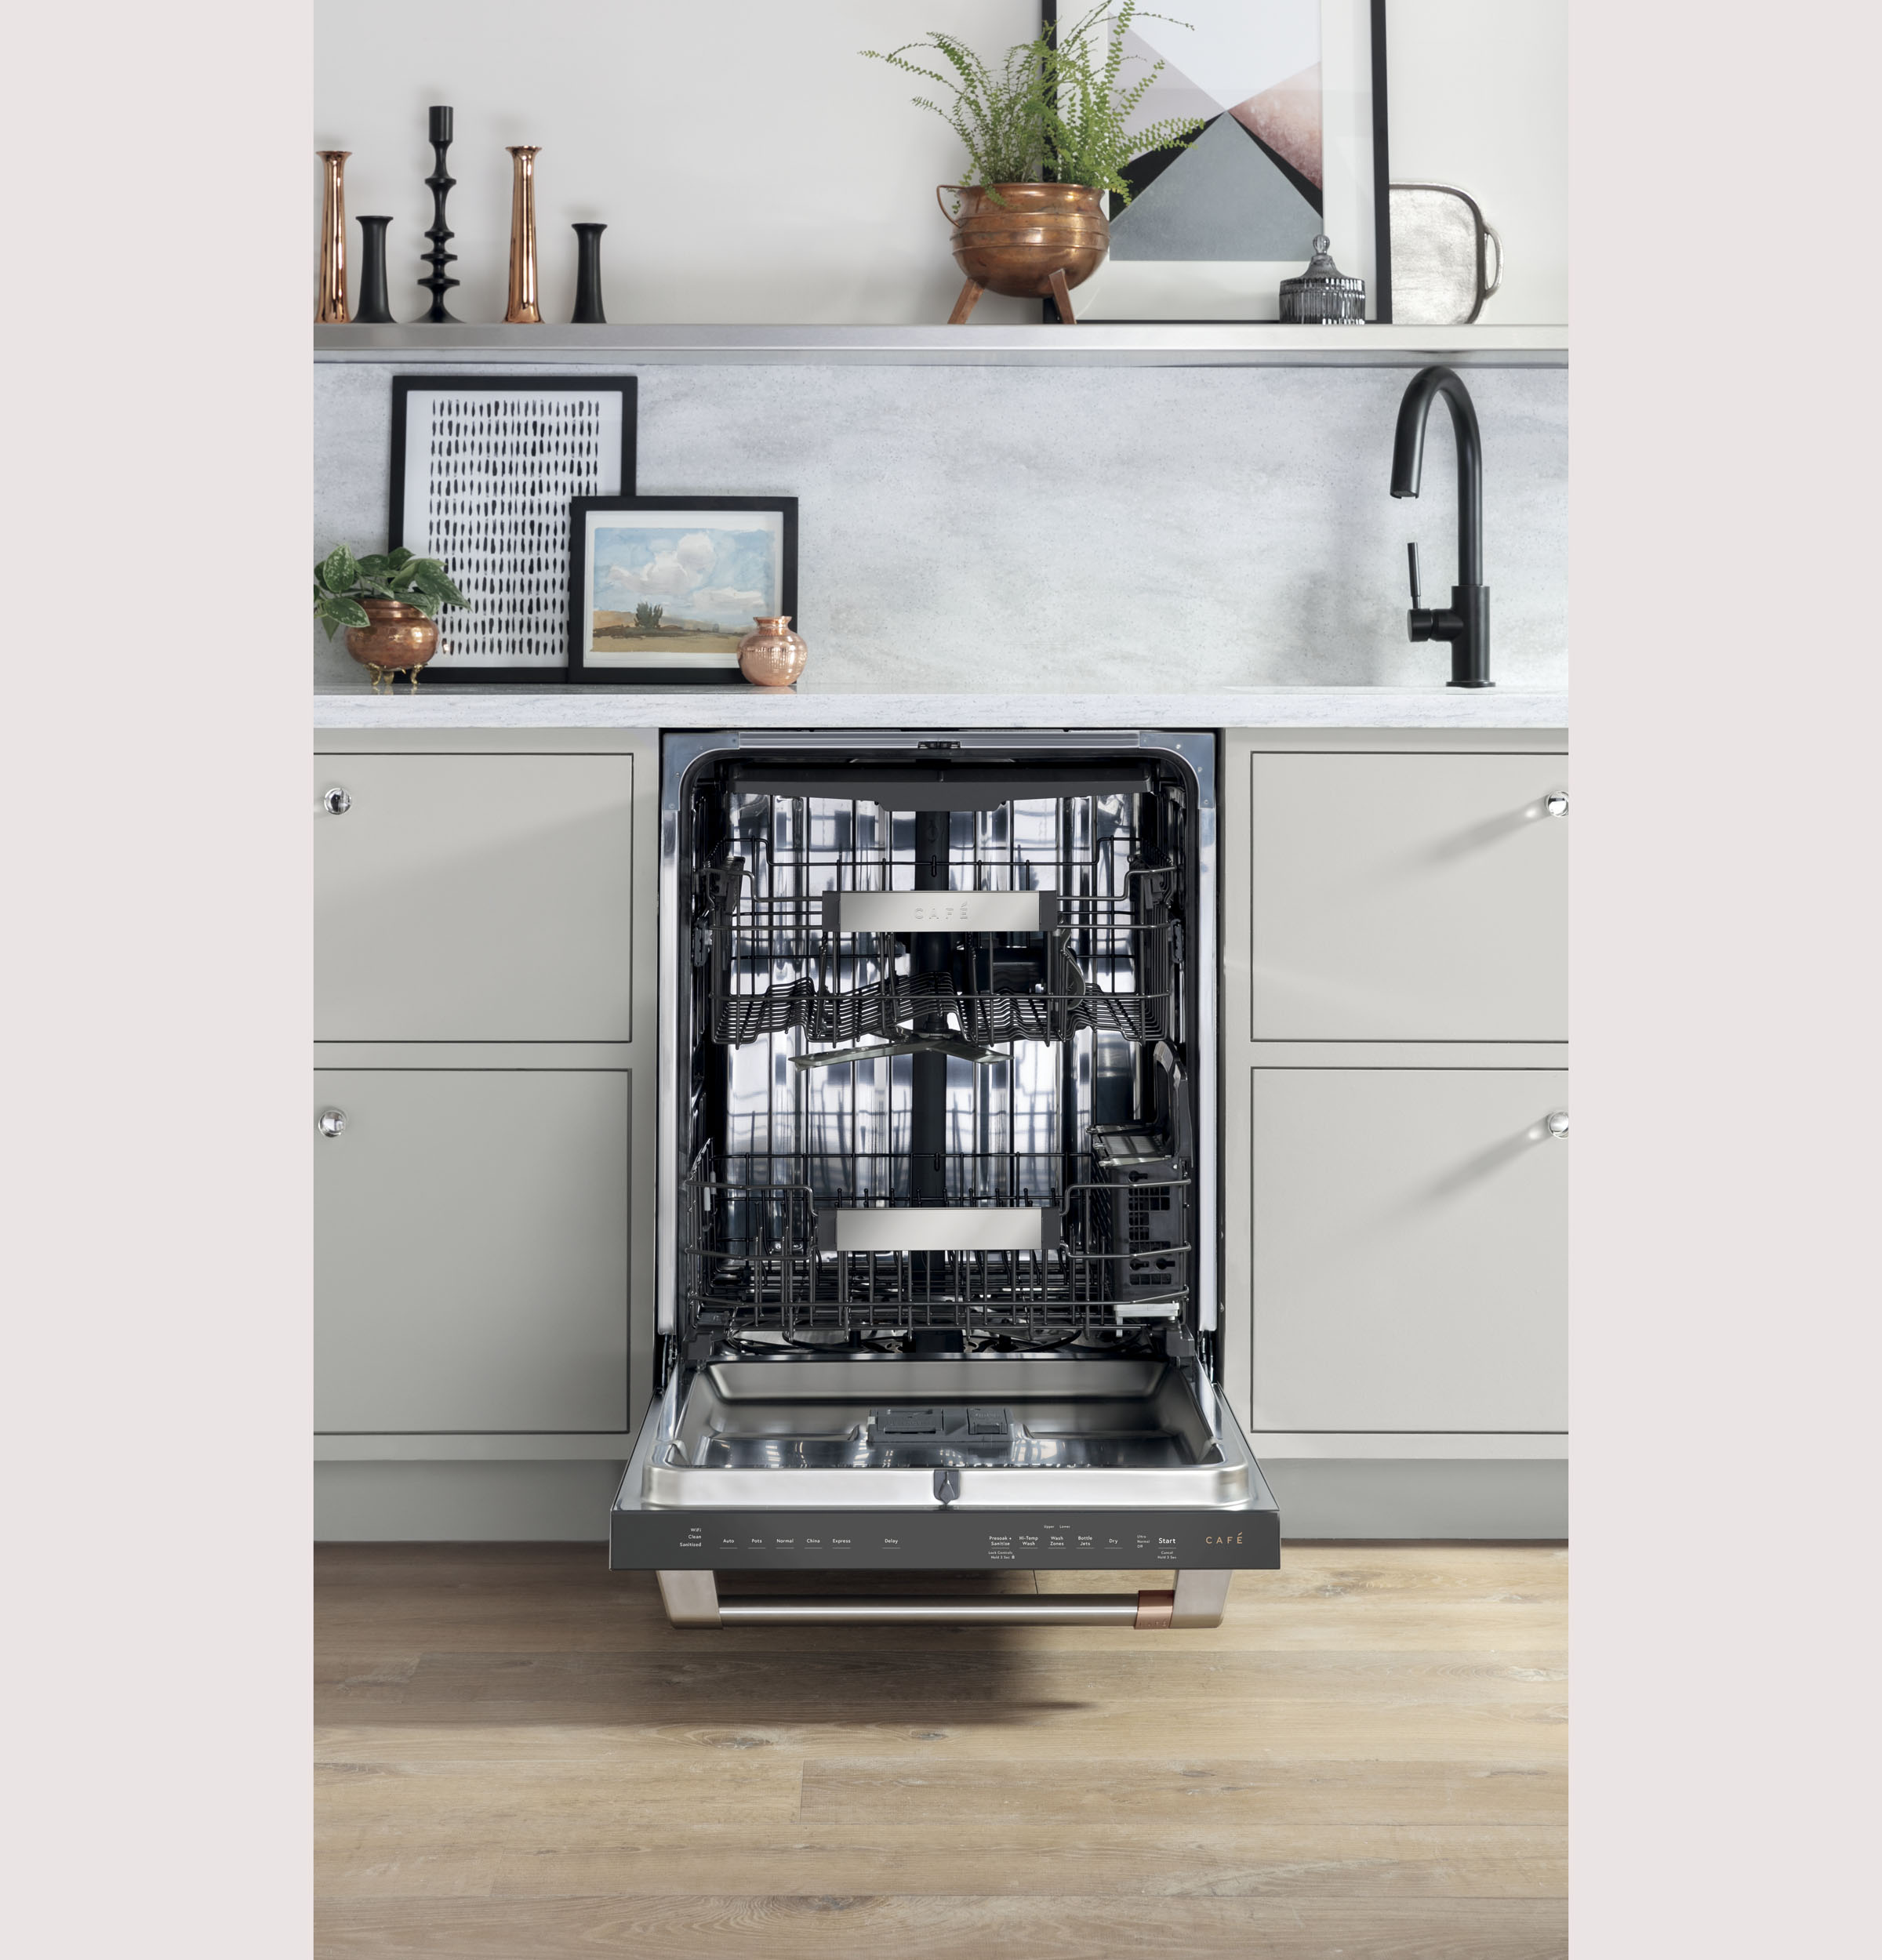 Model: CDT845P3ND1 | Cafe Café™ Stainless Steel Interior Dishwasher with Sanitize and Ultra Wash & Dry